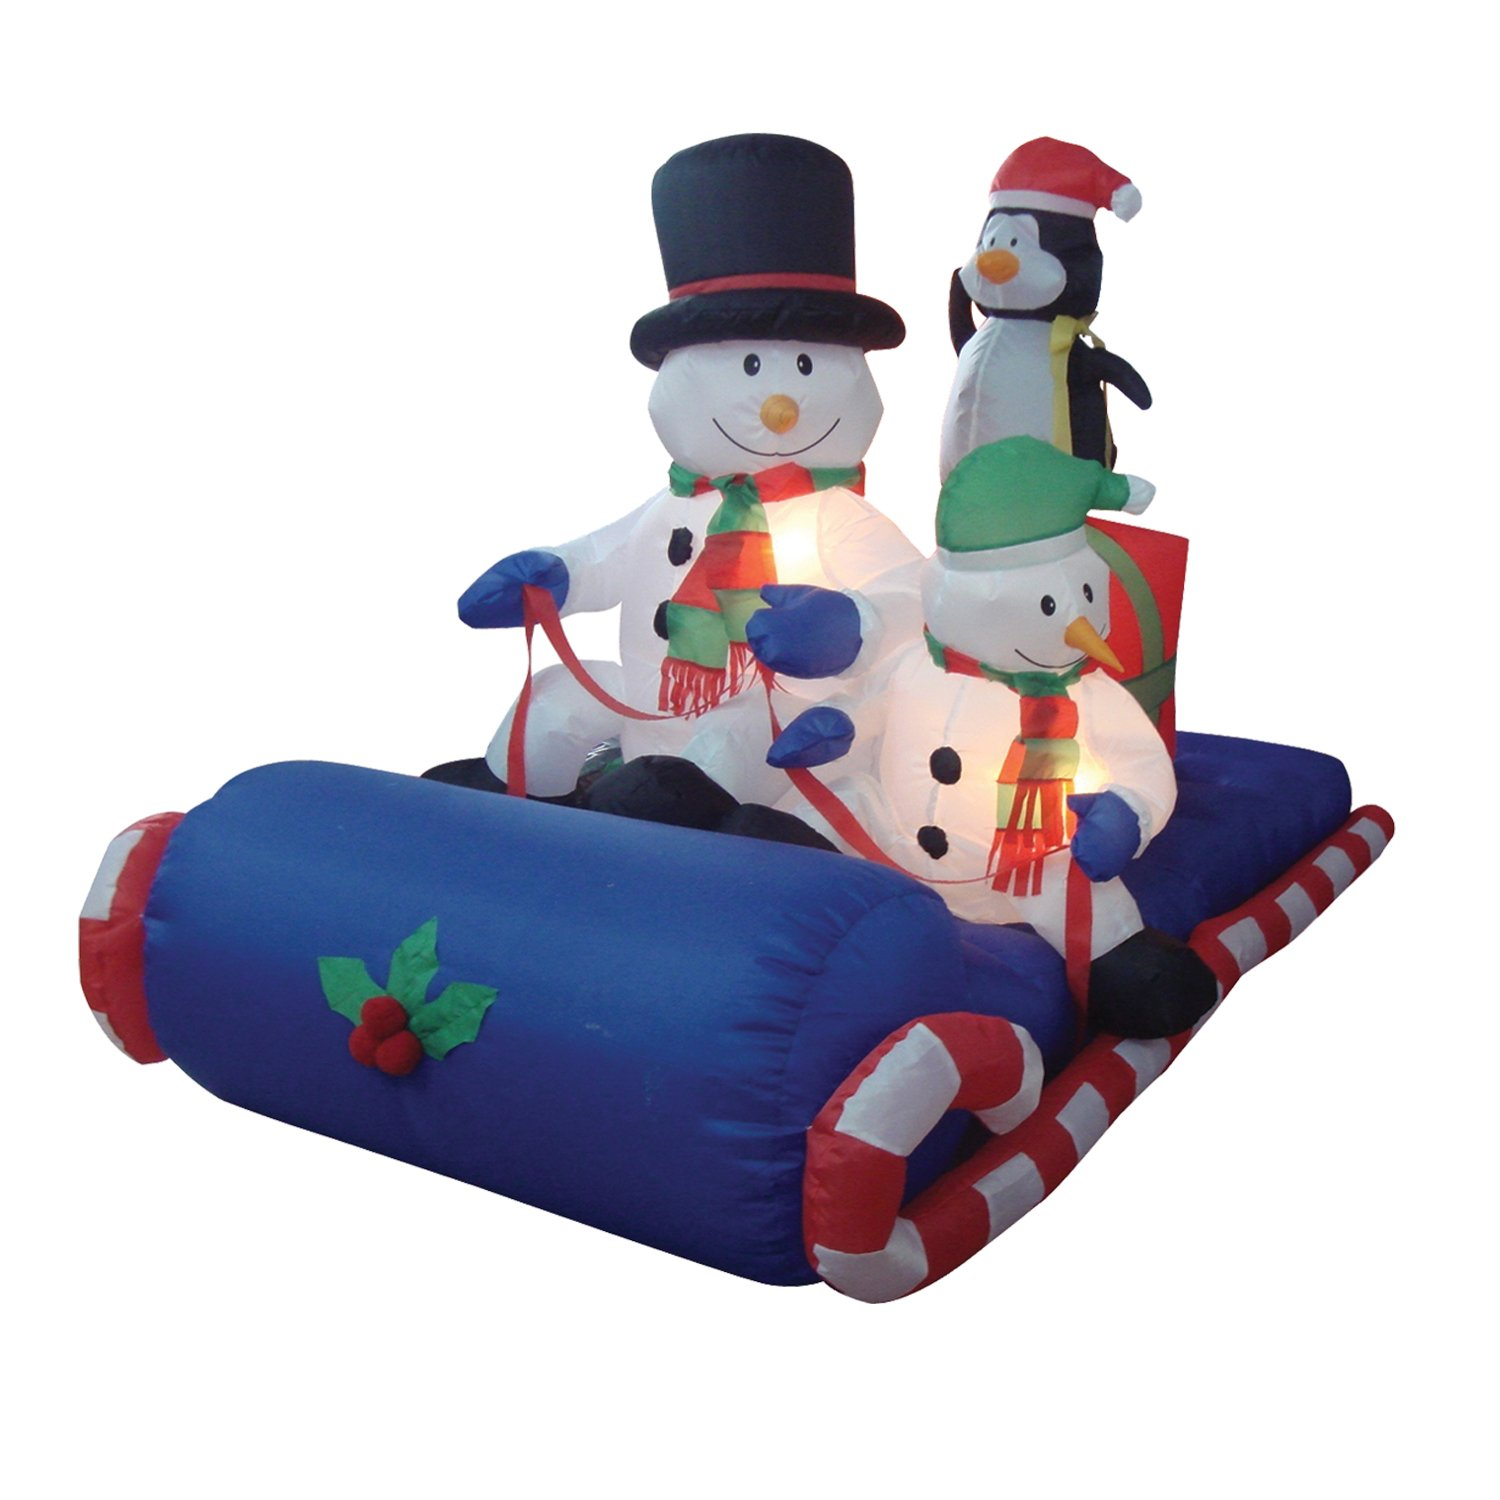 6 Foot Long Christmas Inflatable Snowman Penguin on Sleigh Yard Decoration